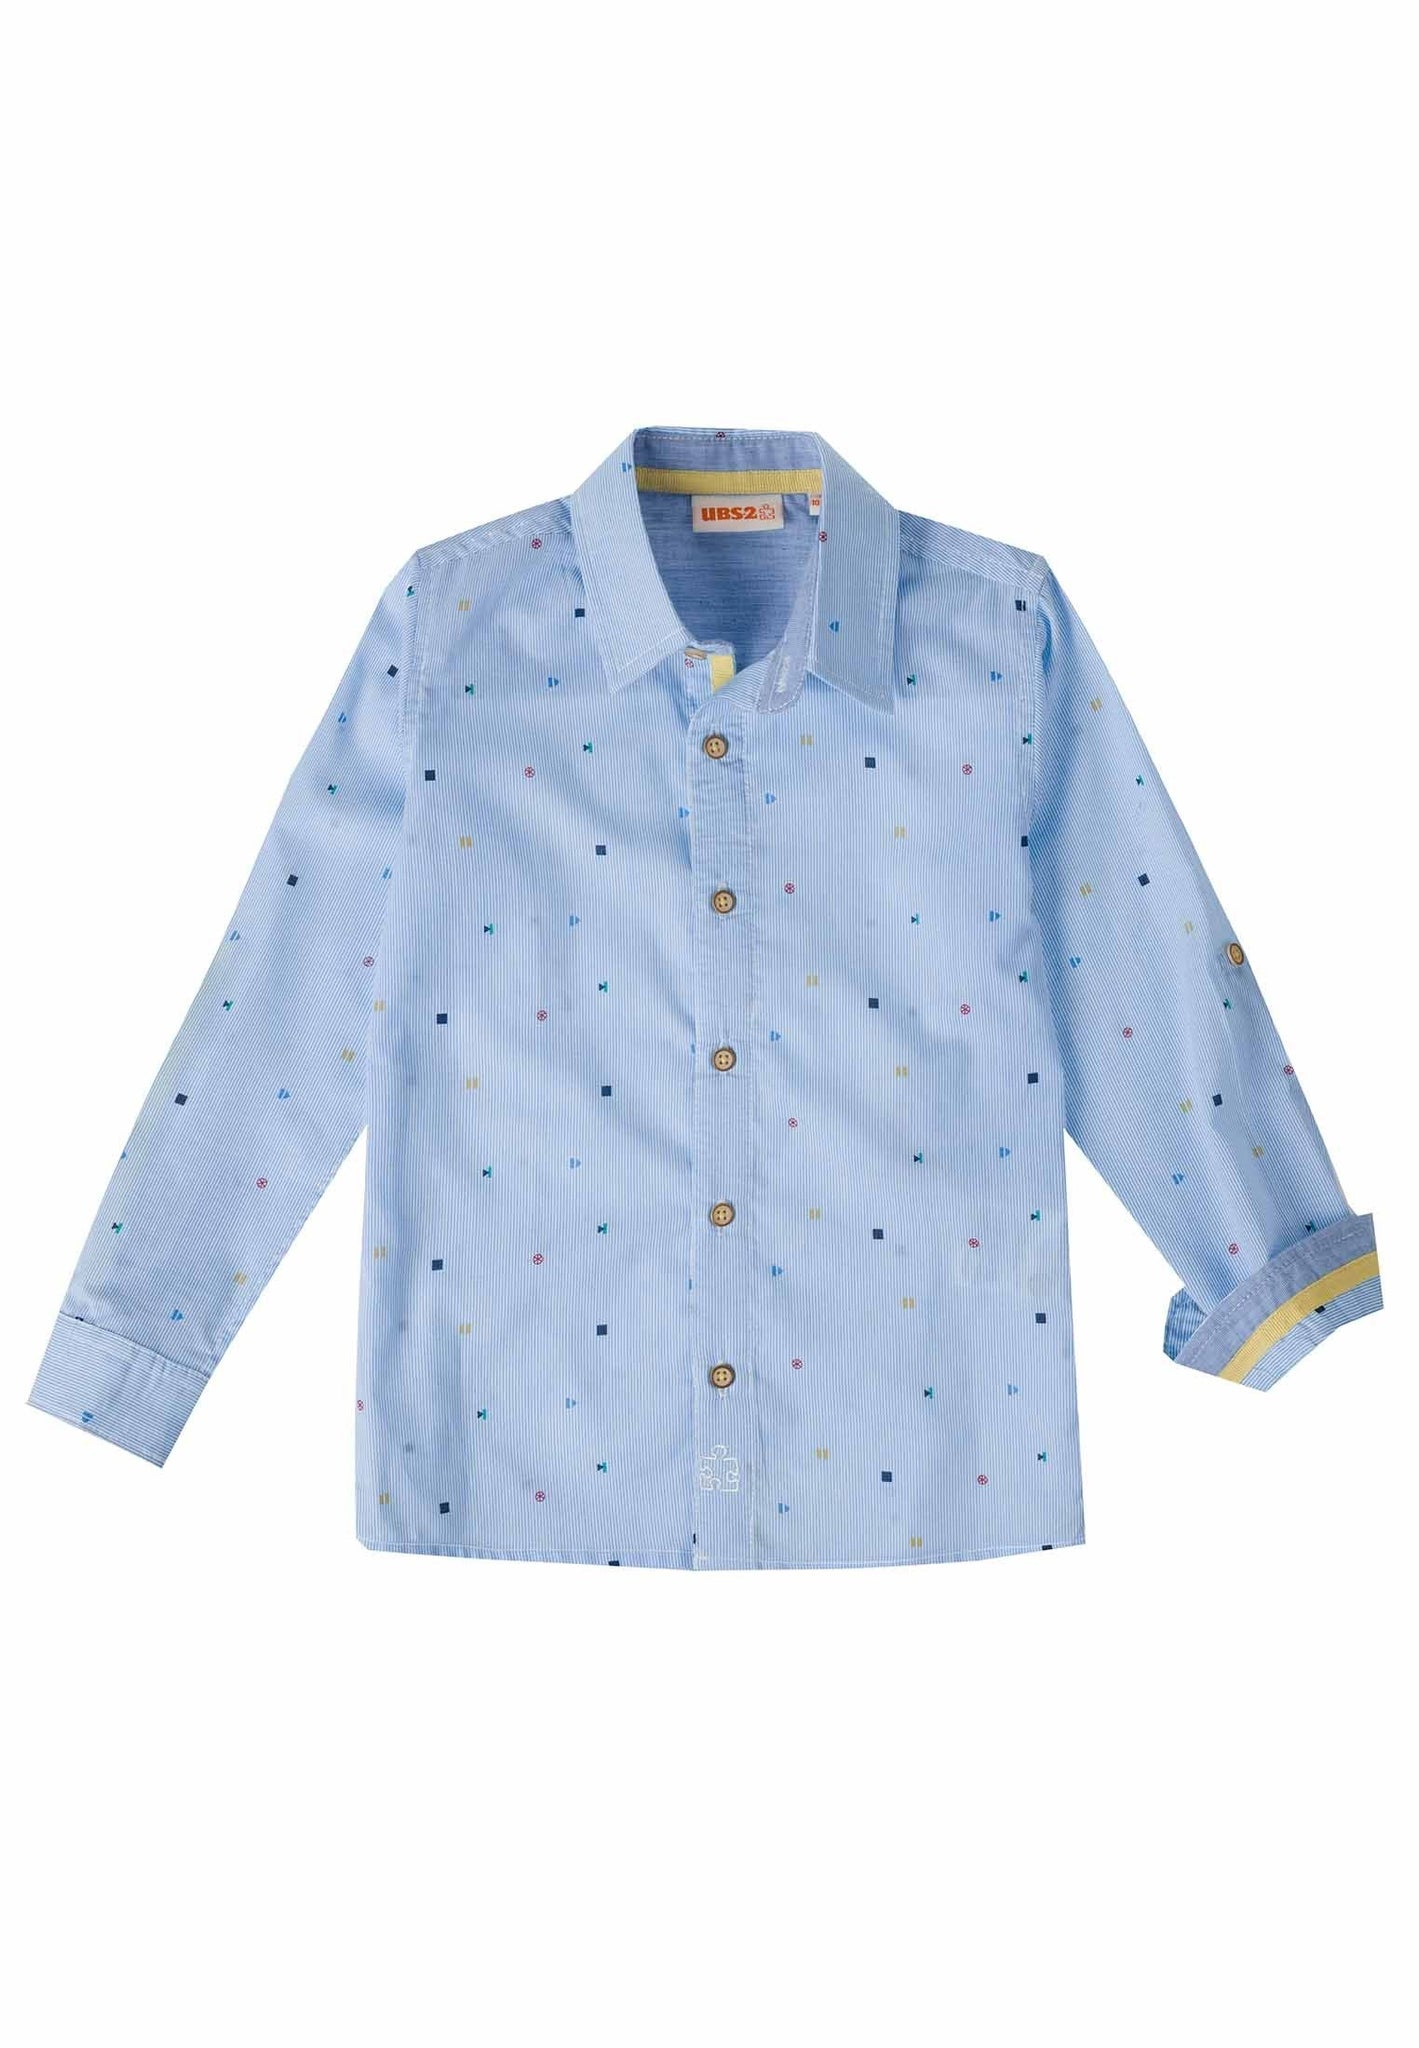 Ubs2 Boys Light Blue Shirt Funky Kids